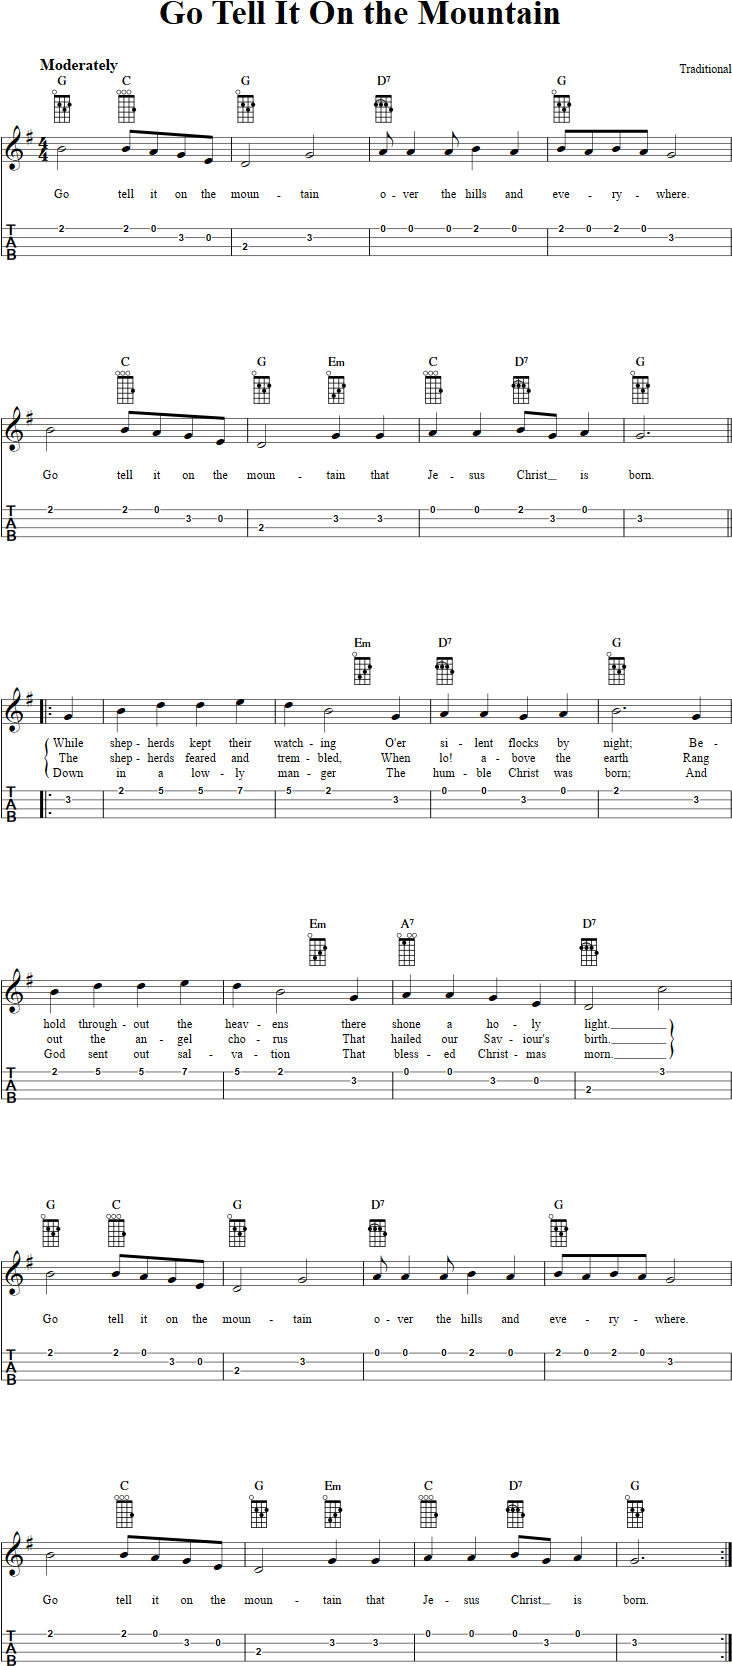 Go Tell It on the Mountain Chords, Sheet Music and Tab for ...